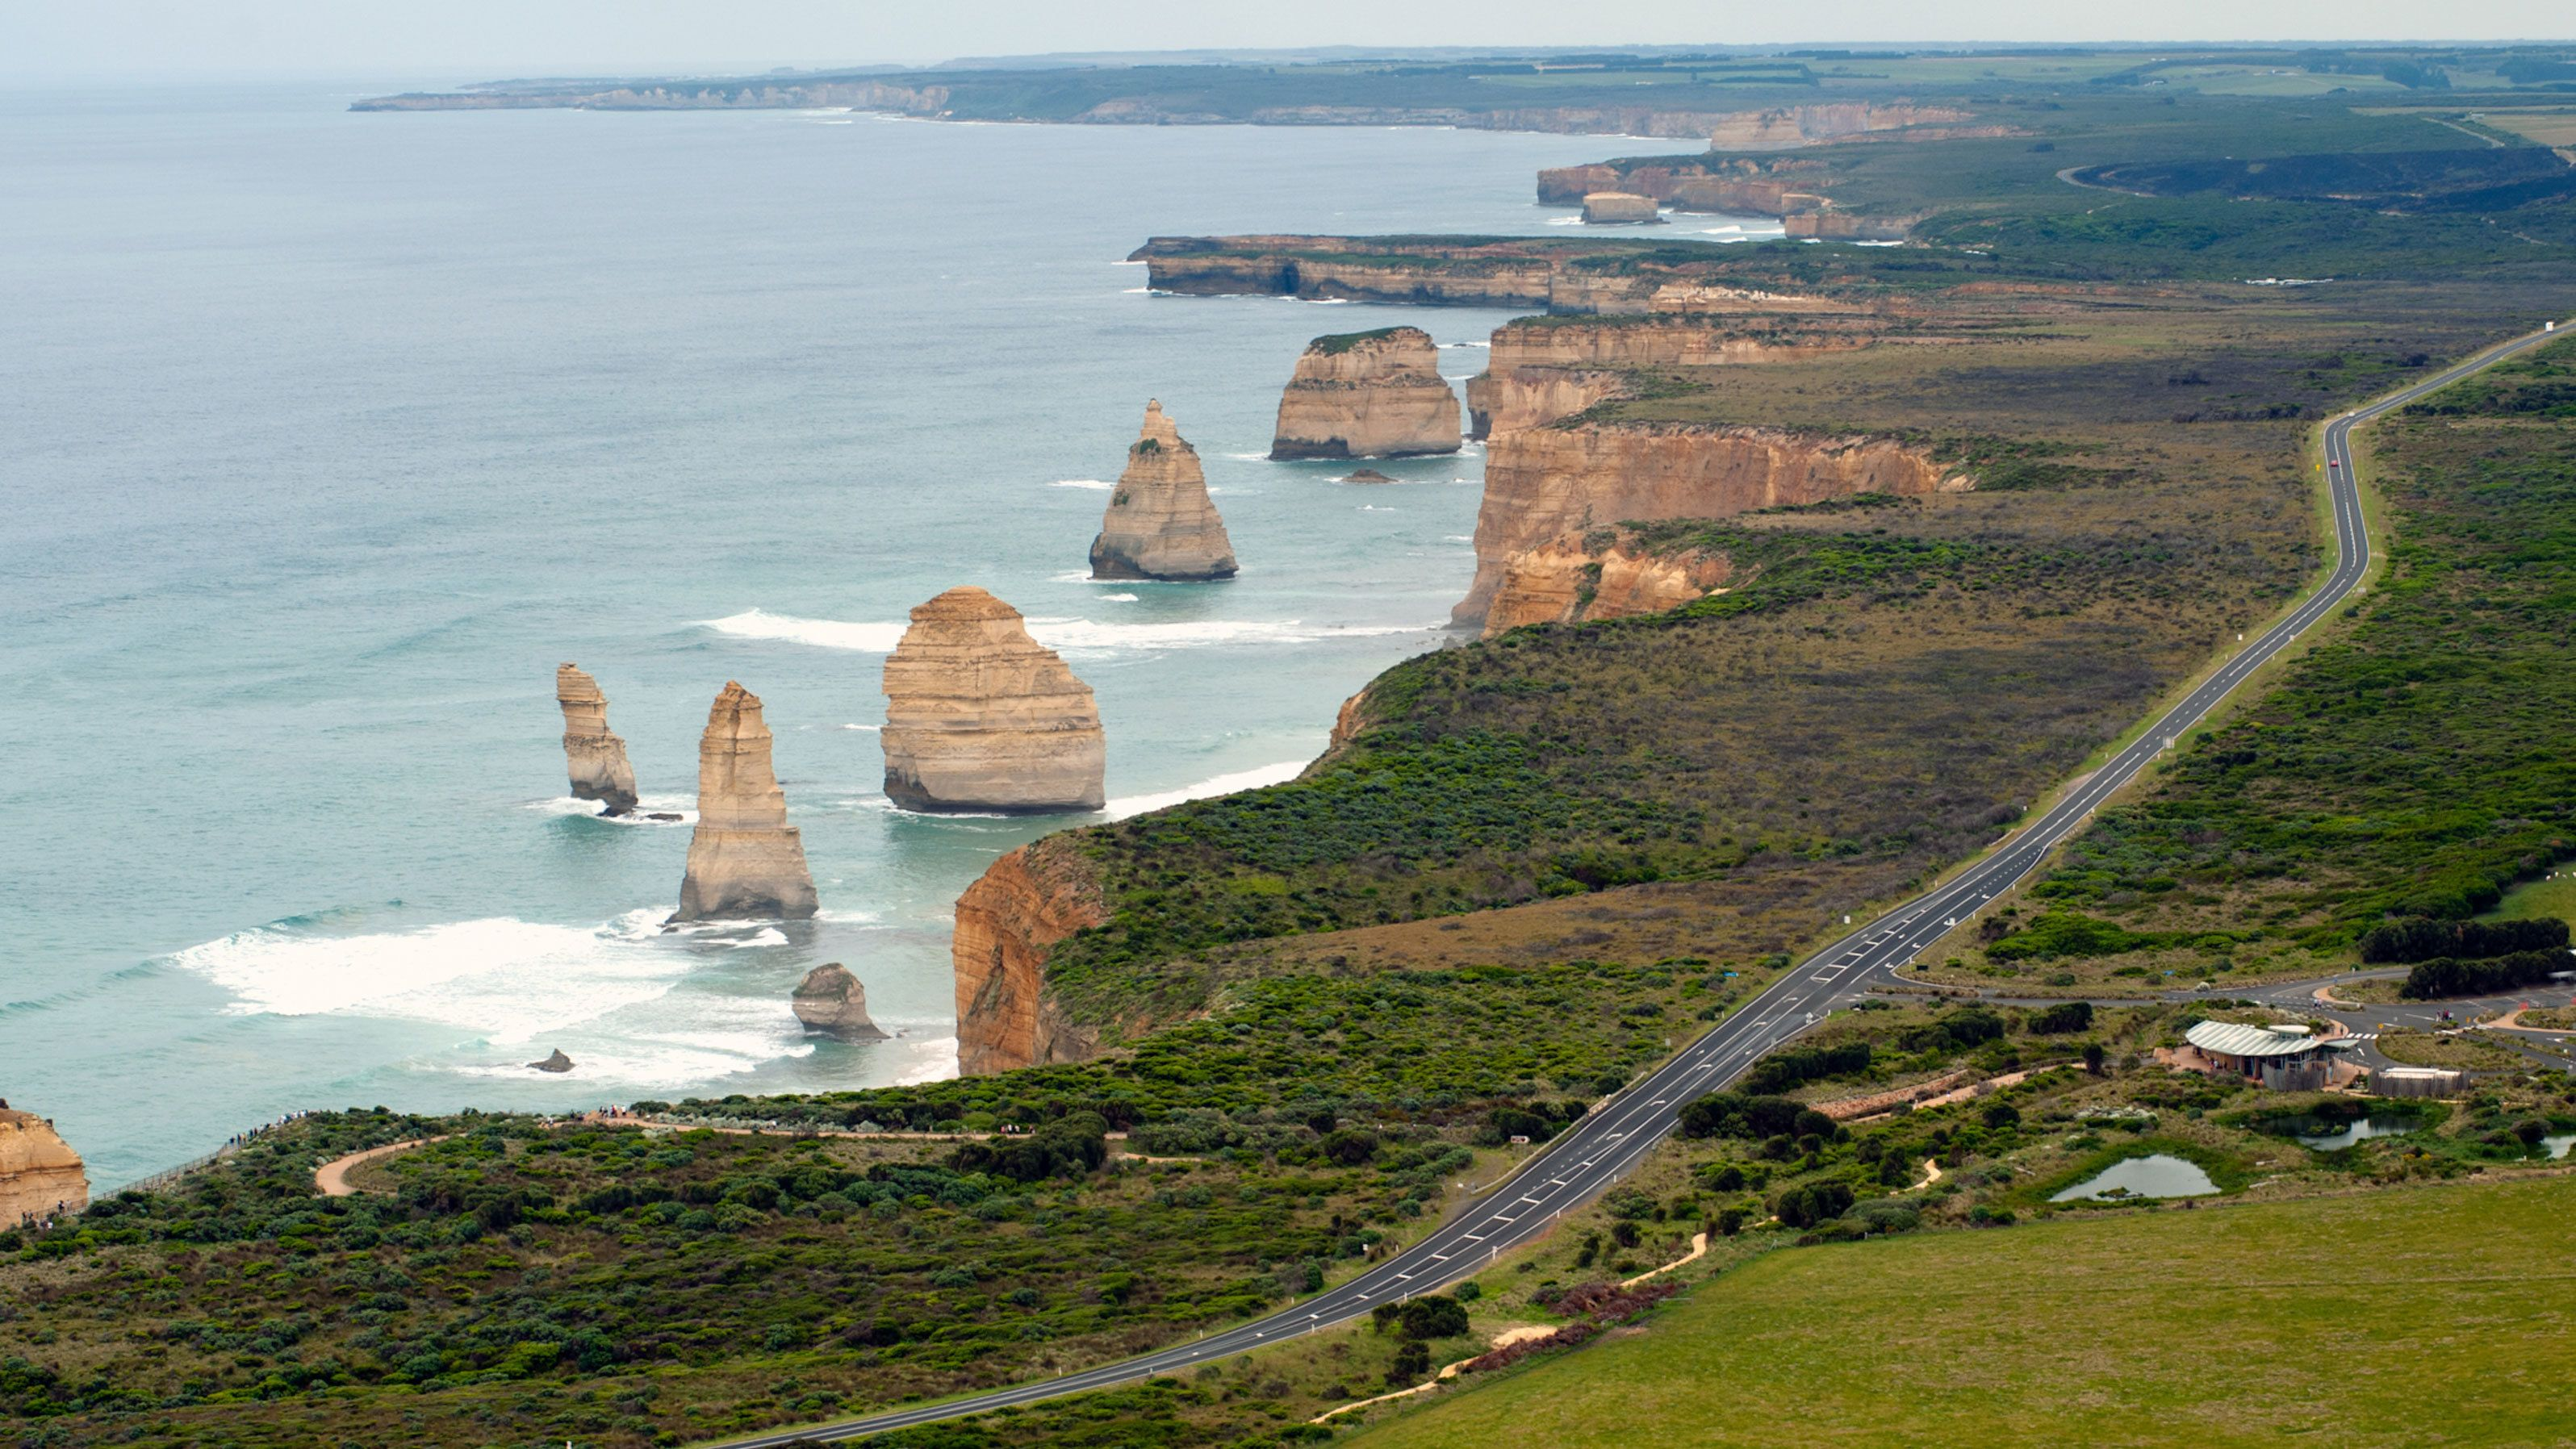 The Great Ocean Road near coastal cliffs and the towering Twelve Apostles rock stacks in Melbourne